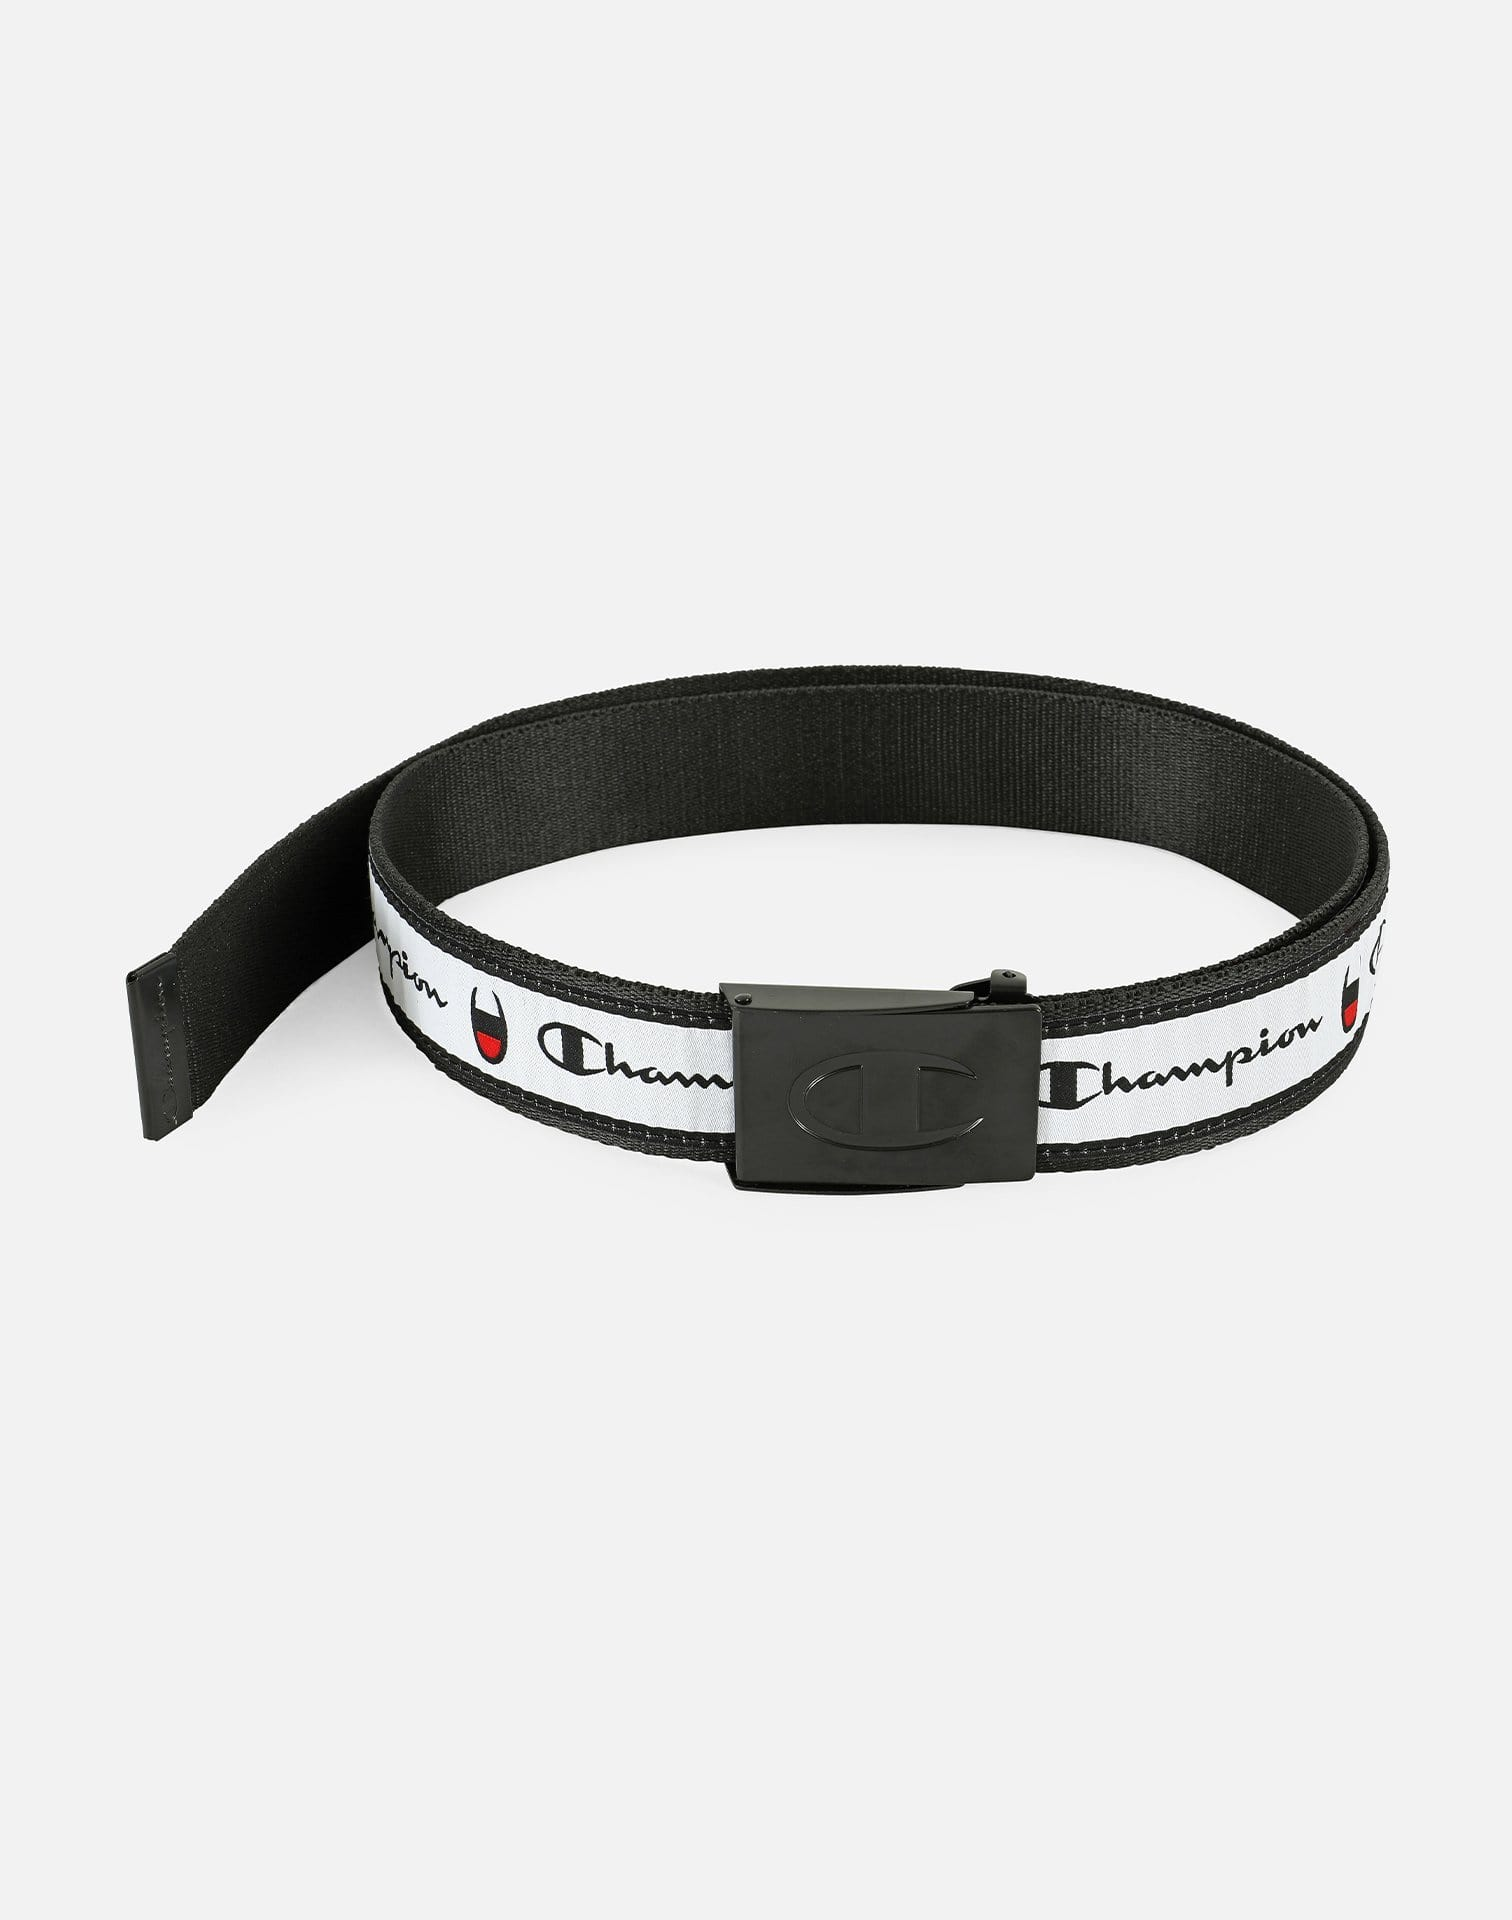 Champion Men's Advocate Jacquard Web Belt